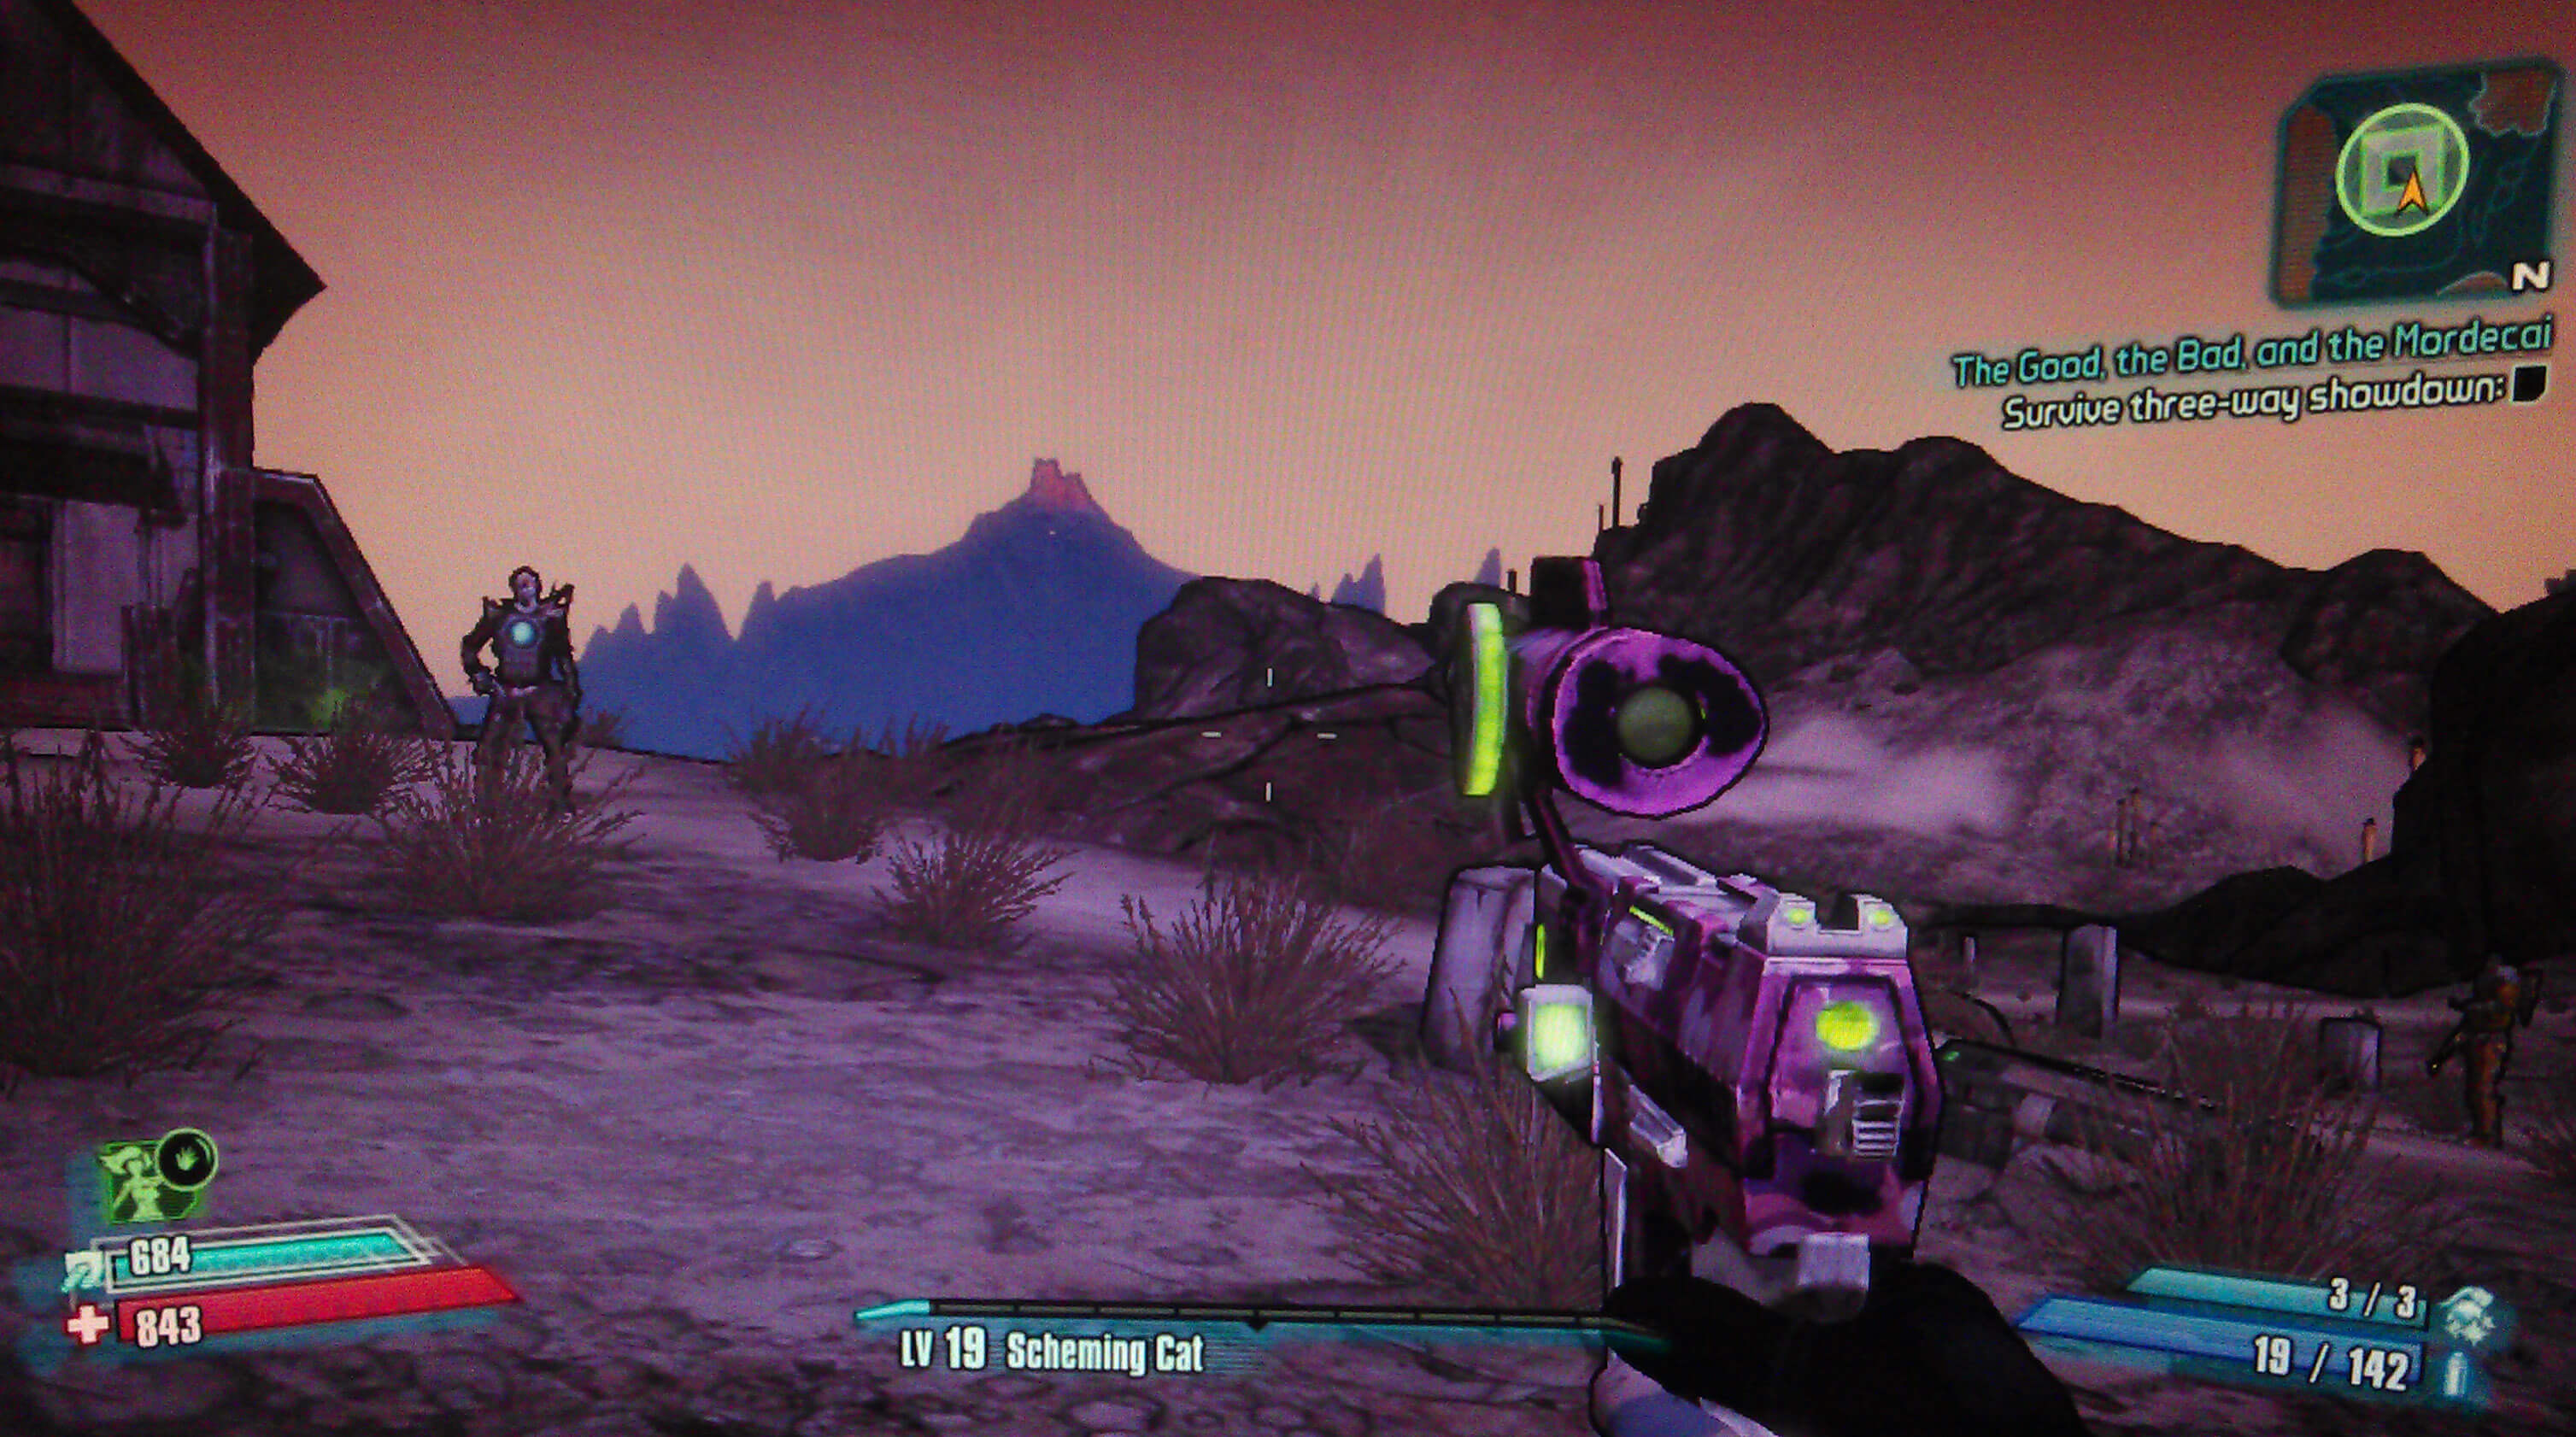 Borderlands 2 The Good the Bad and the Mordecai Walkthrough